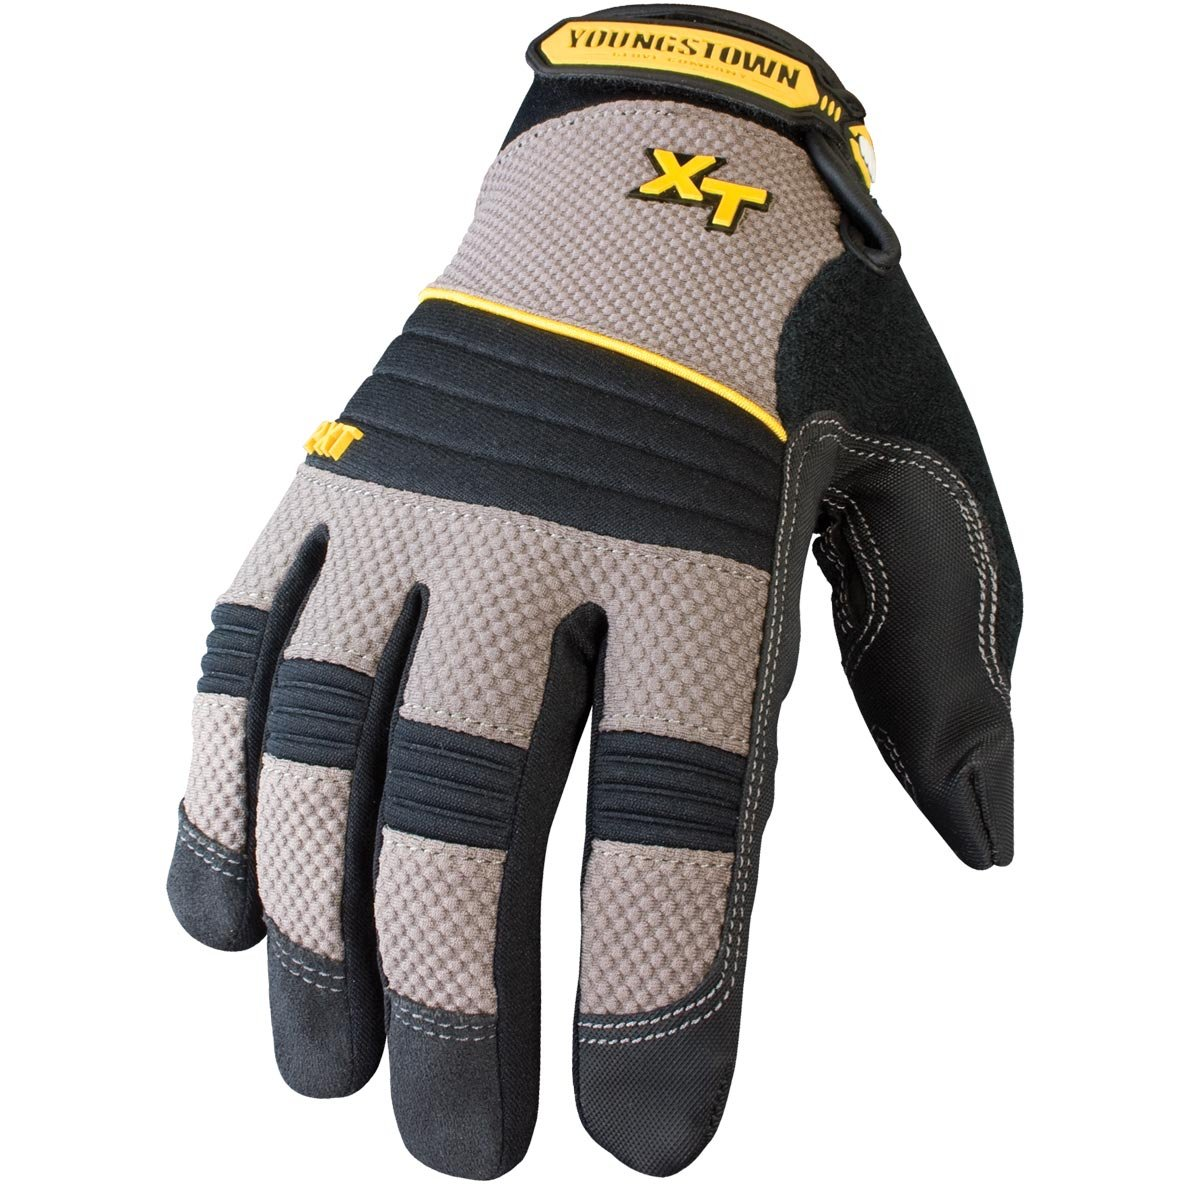 Youngstown Glove 03-3050-78-M Pro XT Performance Glove, Medium, Gray Youngstown Glove Company